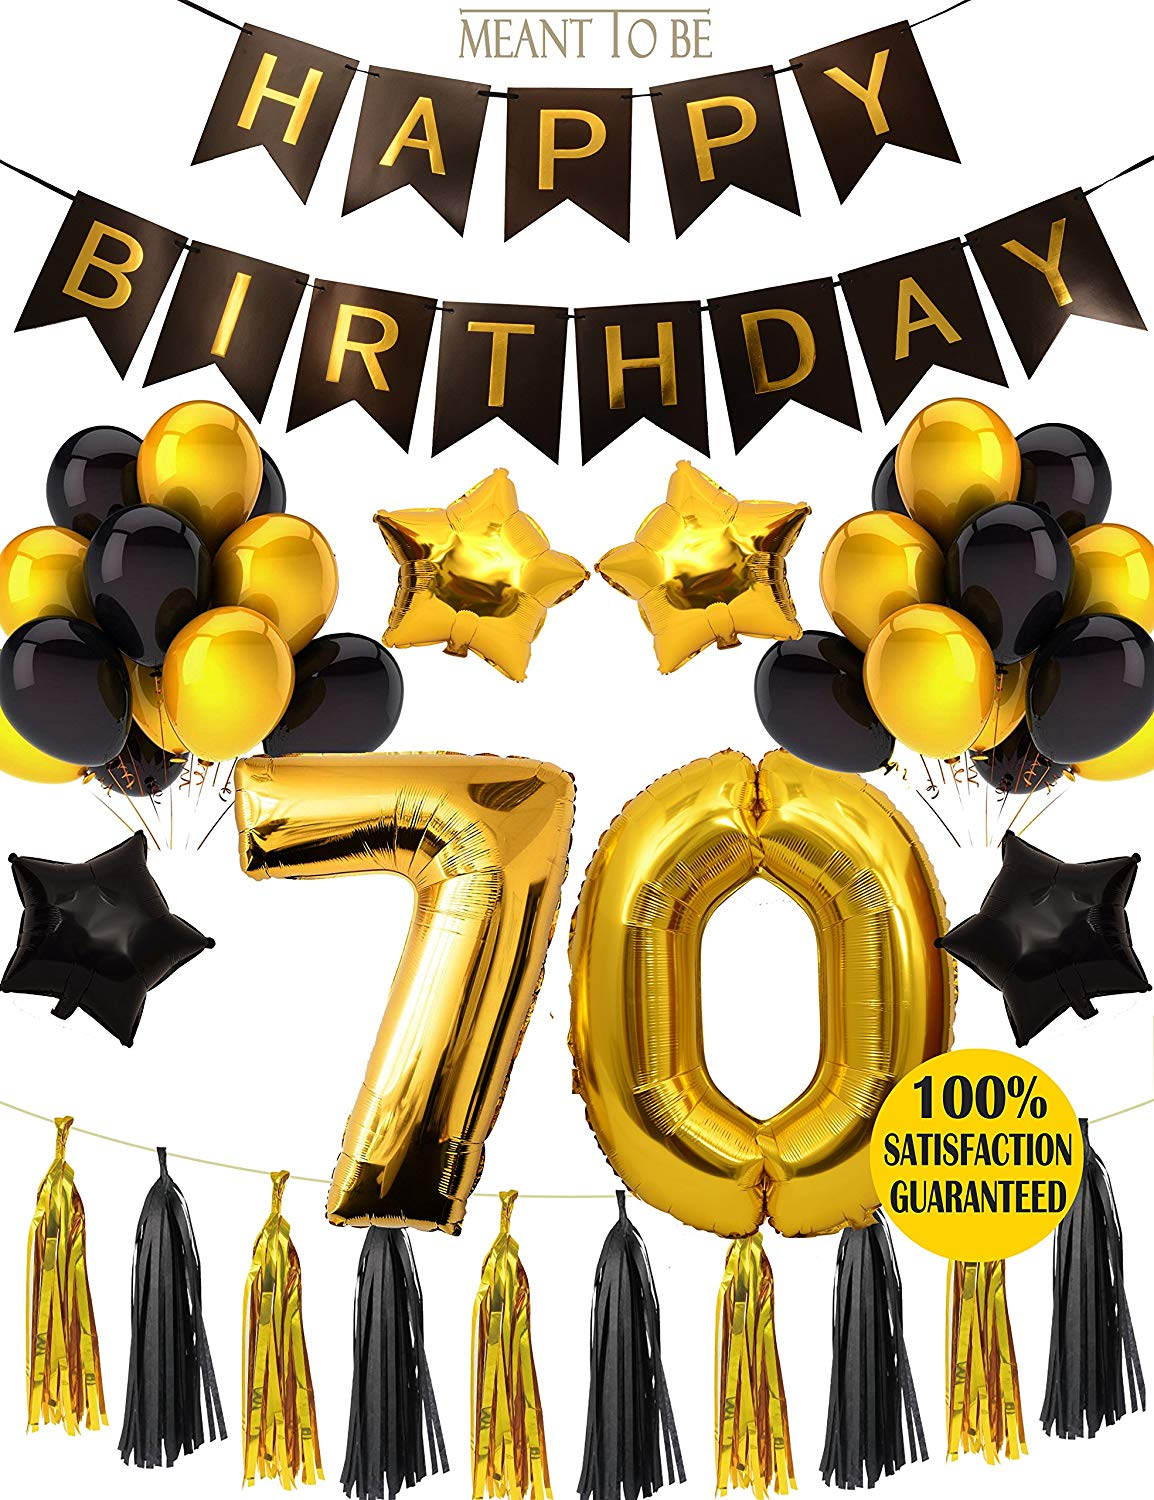 Happy 70th Birthday Party Decorations E/&L Cheers to 70 Years Banner 70th Wedding Anniversary Decorations